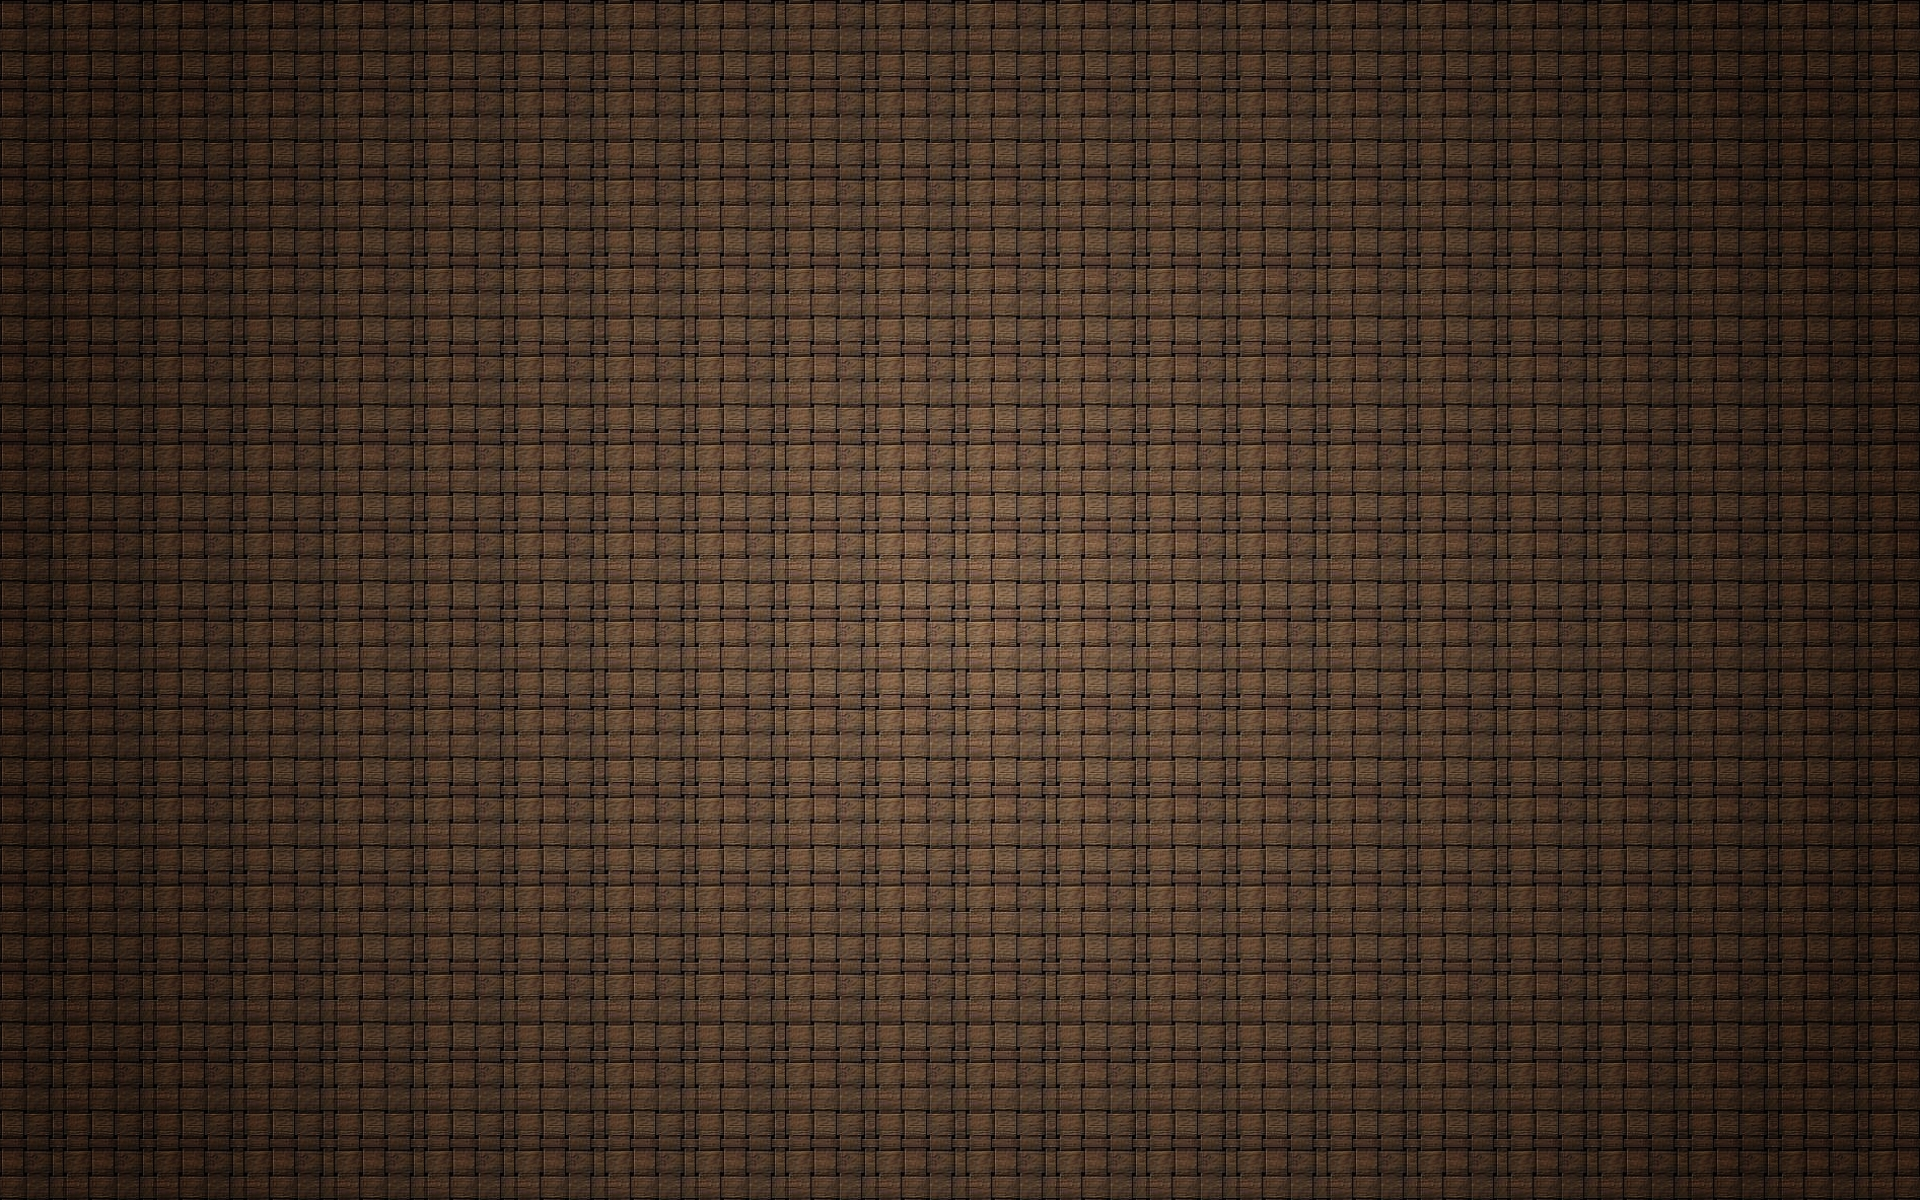 brown fabric cloth, texture cloth, cloth texture background, download photo